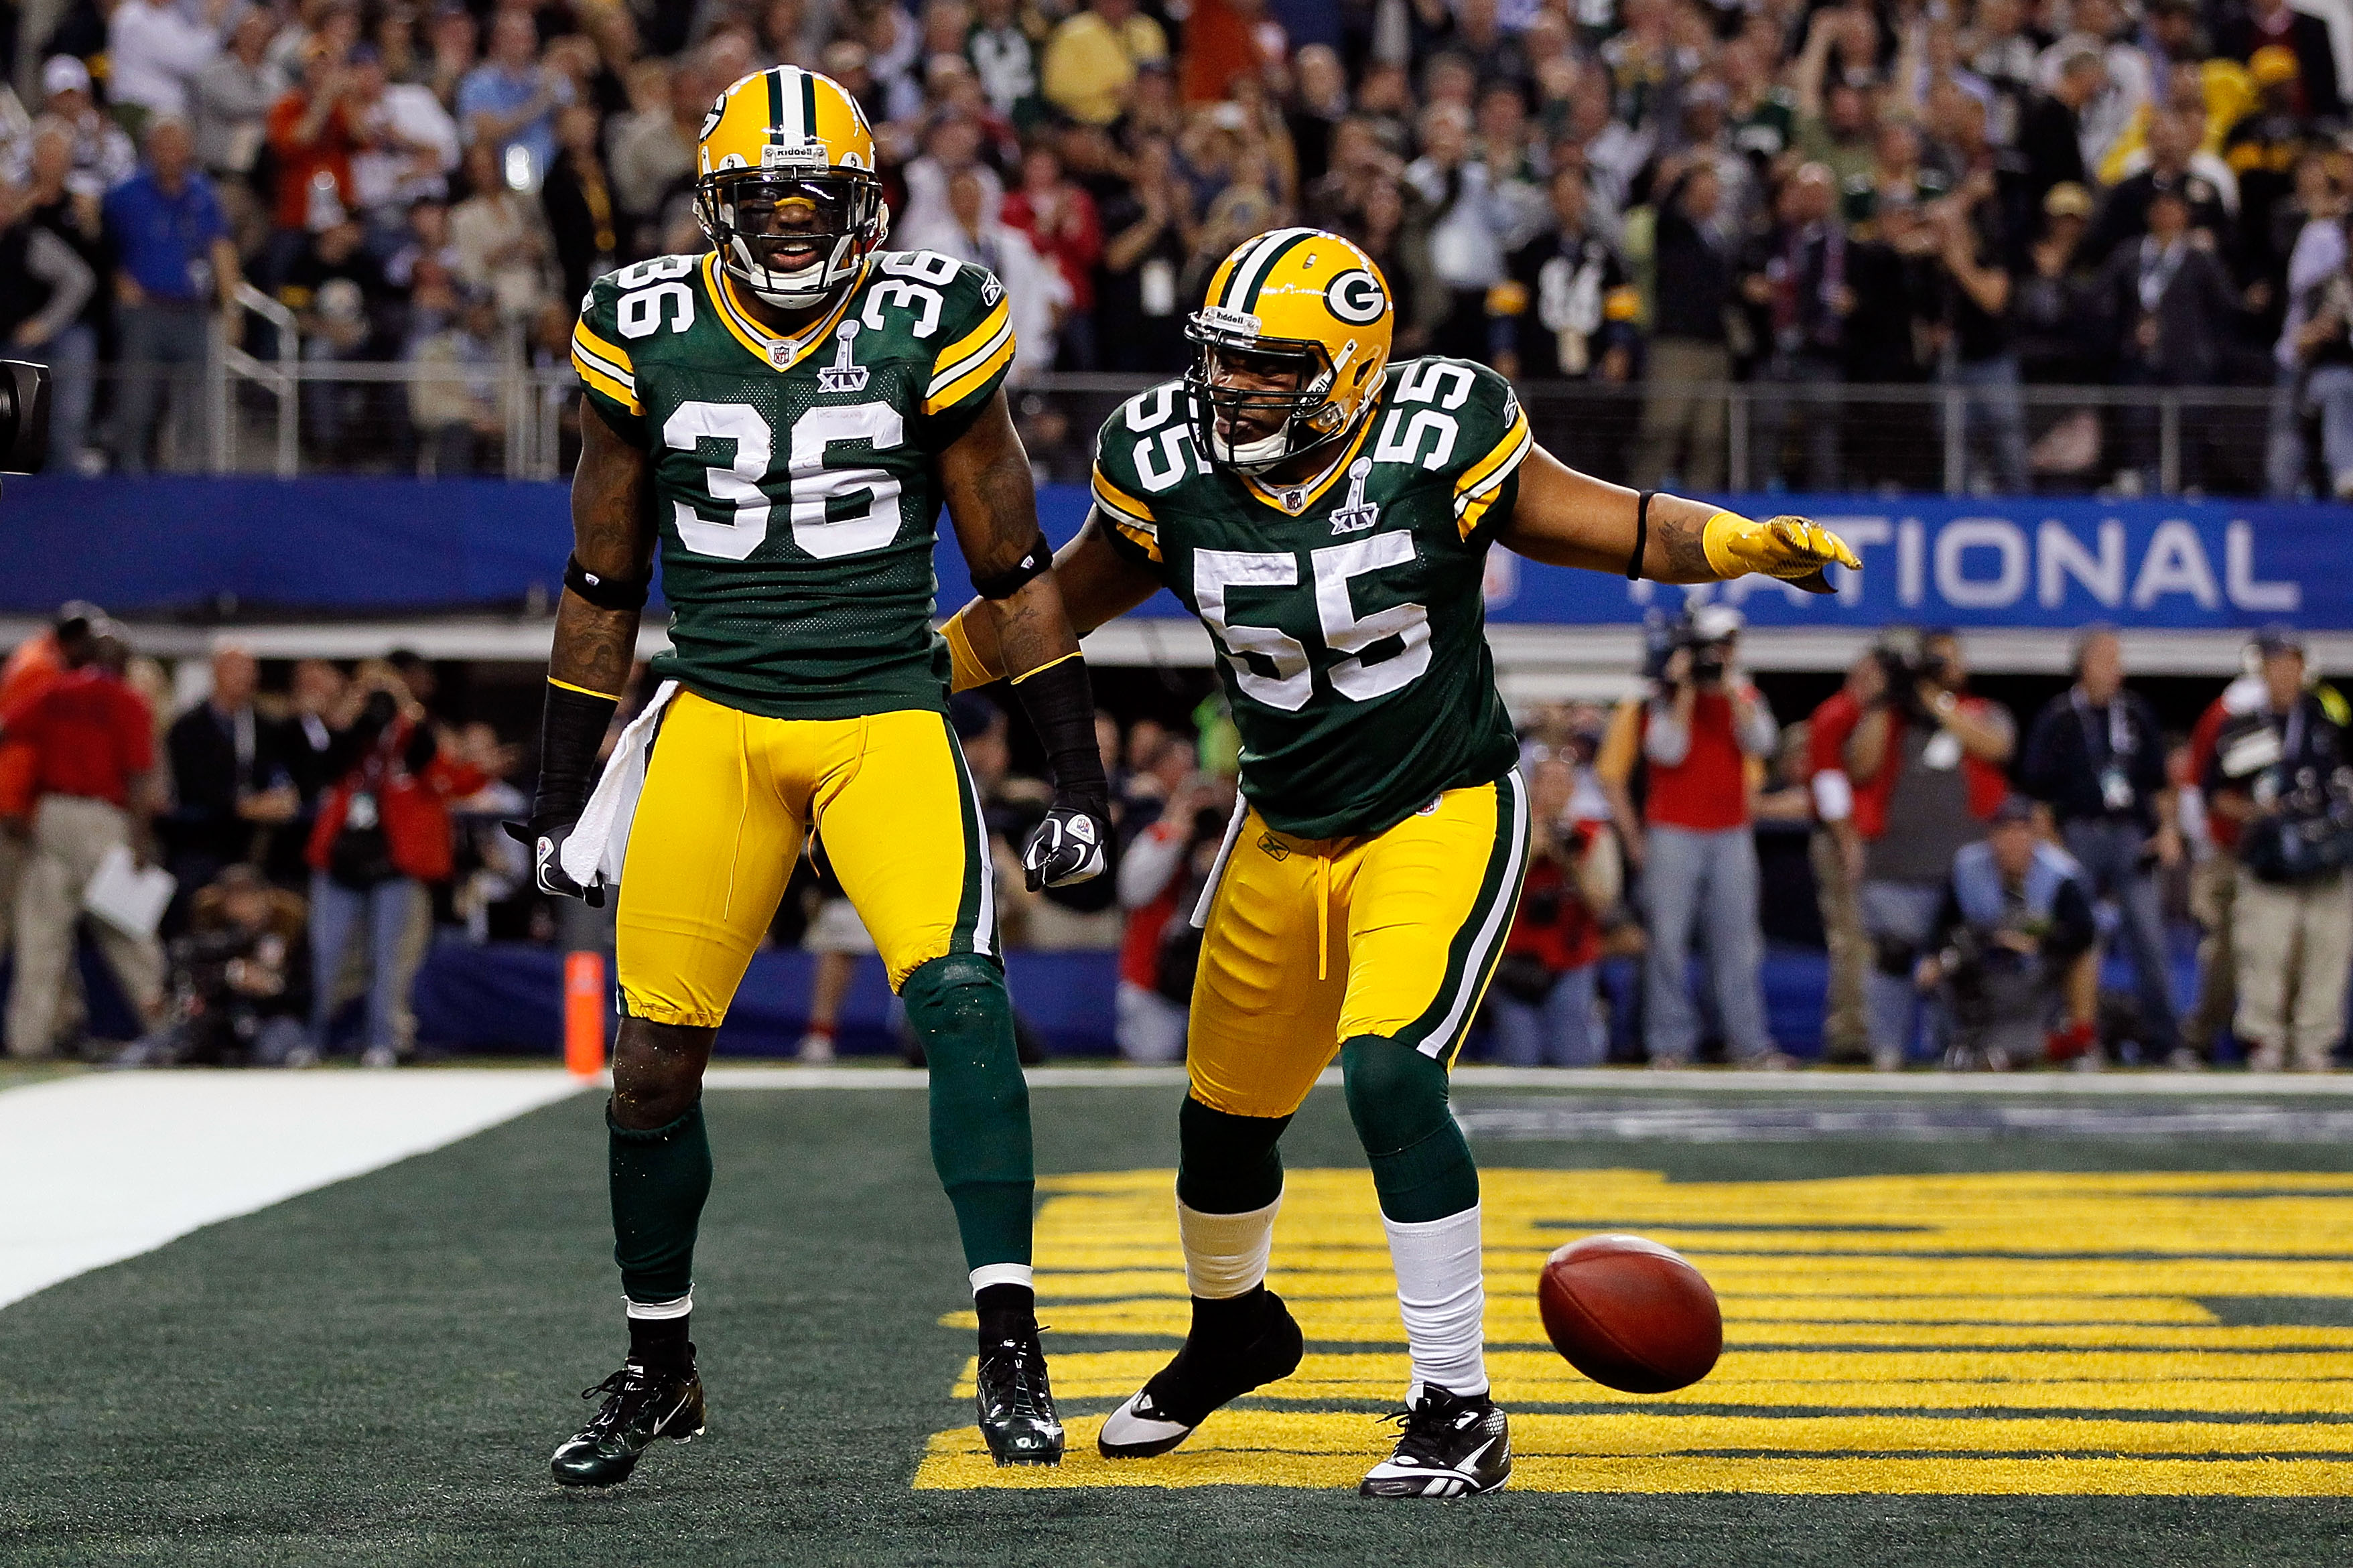 ARLINGTON, TX - FEBRUARY 06:  (L-R) Nick Collins #36 and Desmond Bishop #55 of the Green Bay Packers celebrate after Collins scored a touchdown on an interception return against the Pittsburgh Steelers during Super Bowl XLV at Cowboys Stadium on February